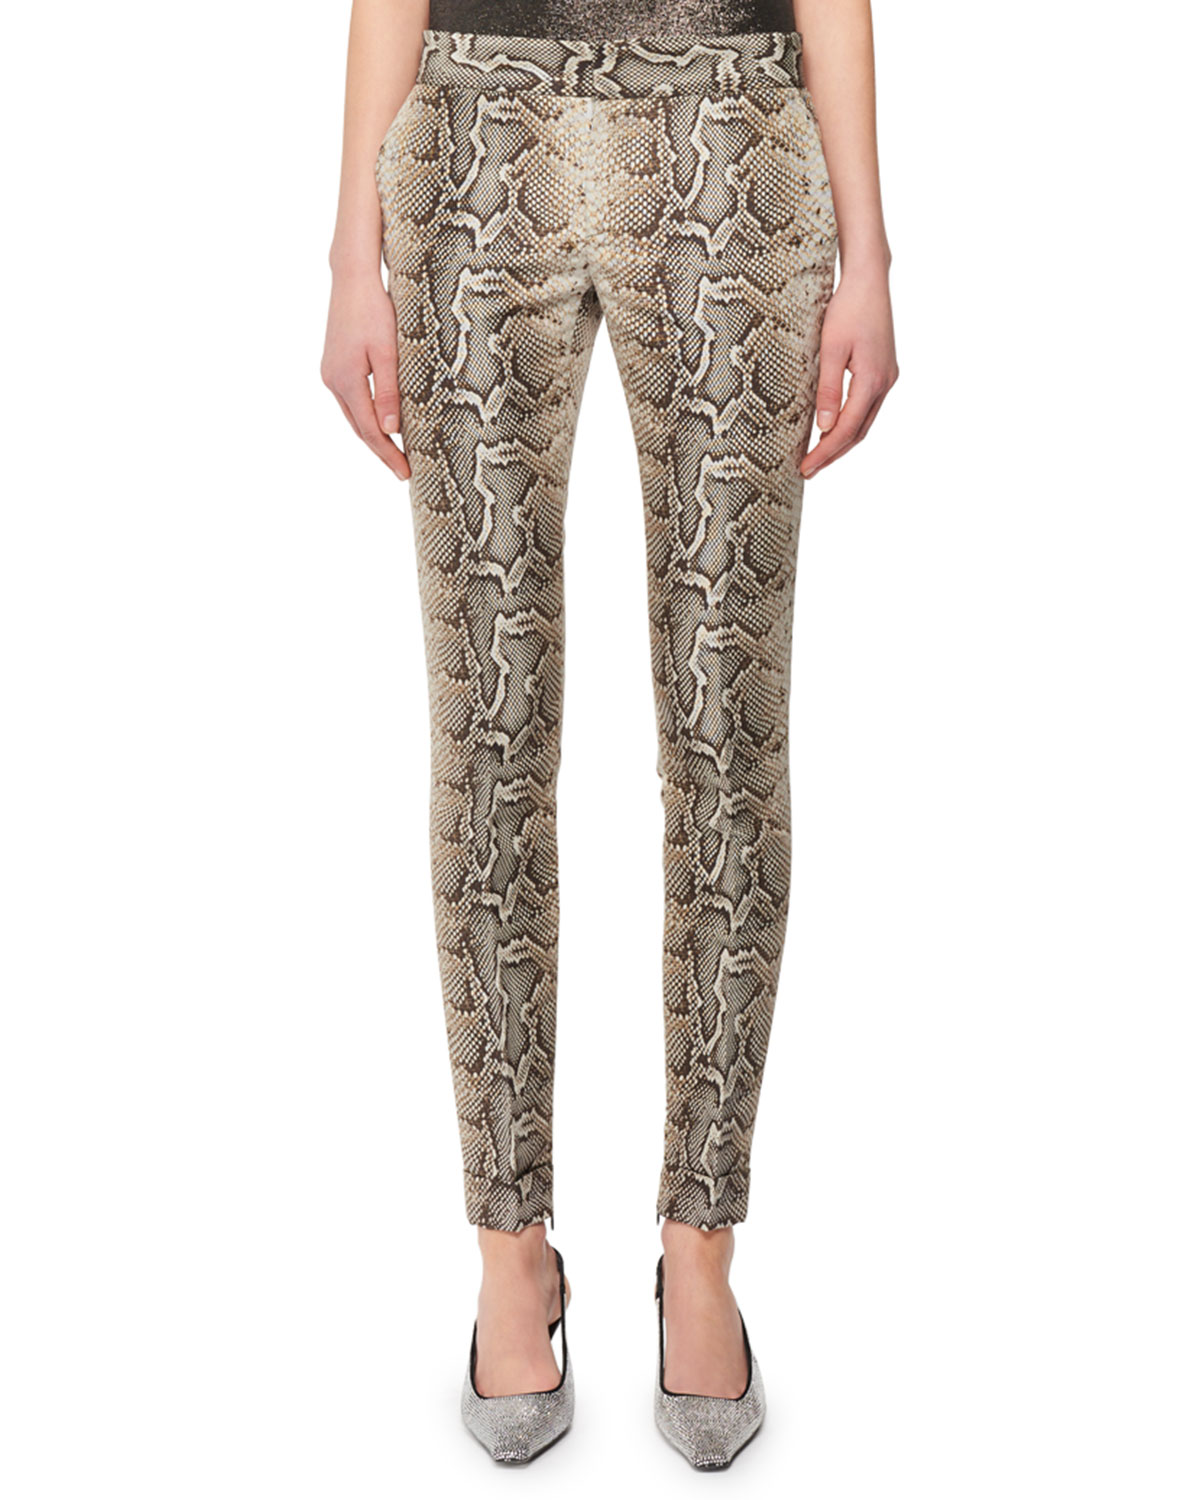 Snake-Print Stretch-Cotton Twill Skinny Pants by Tom Ford, available on neimanmarcus.com for $2200 Kylie Jenner Pants Exact Product